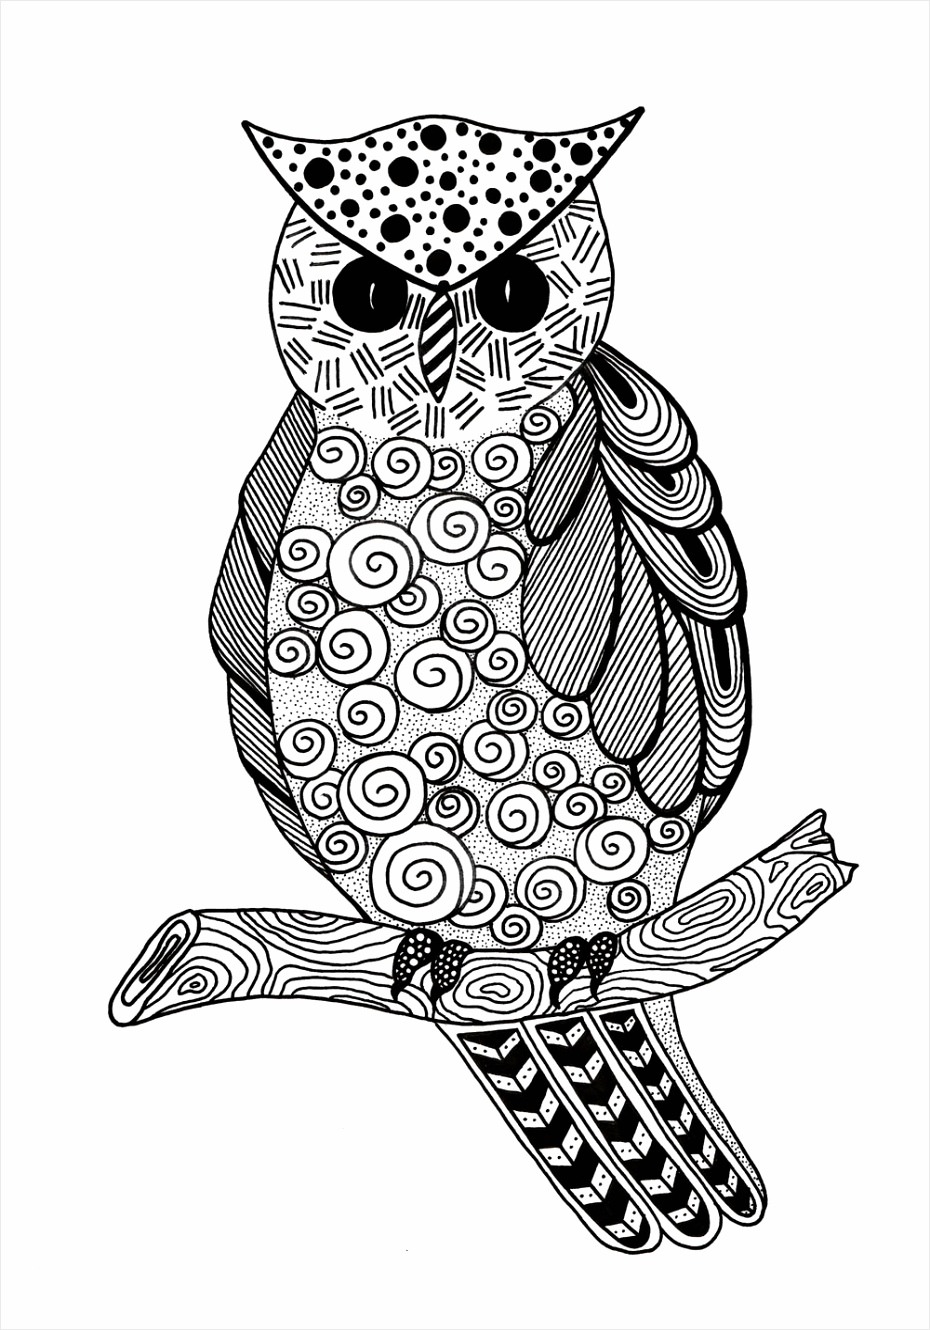 Zentangle Owl Adult Coloring Page Extra 1000 ID aiihi